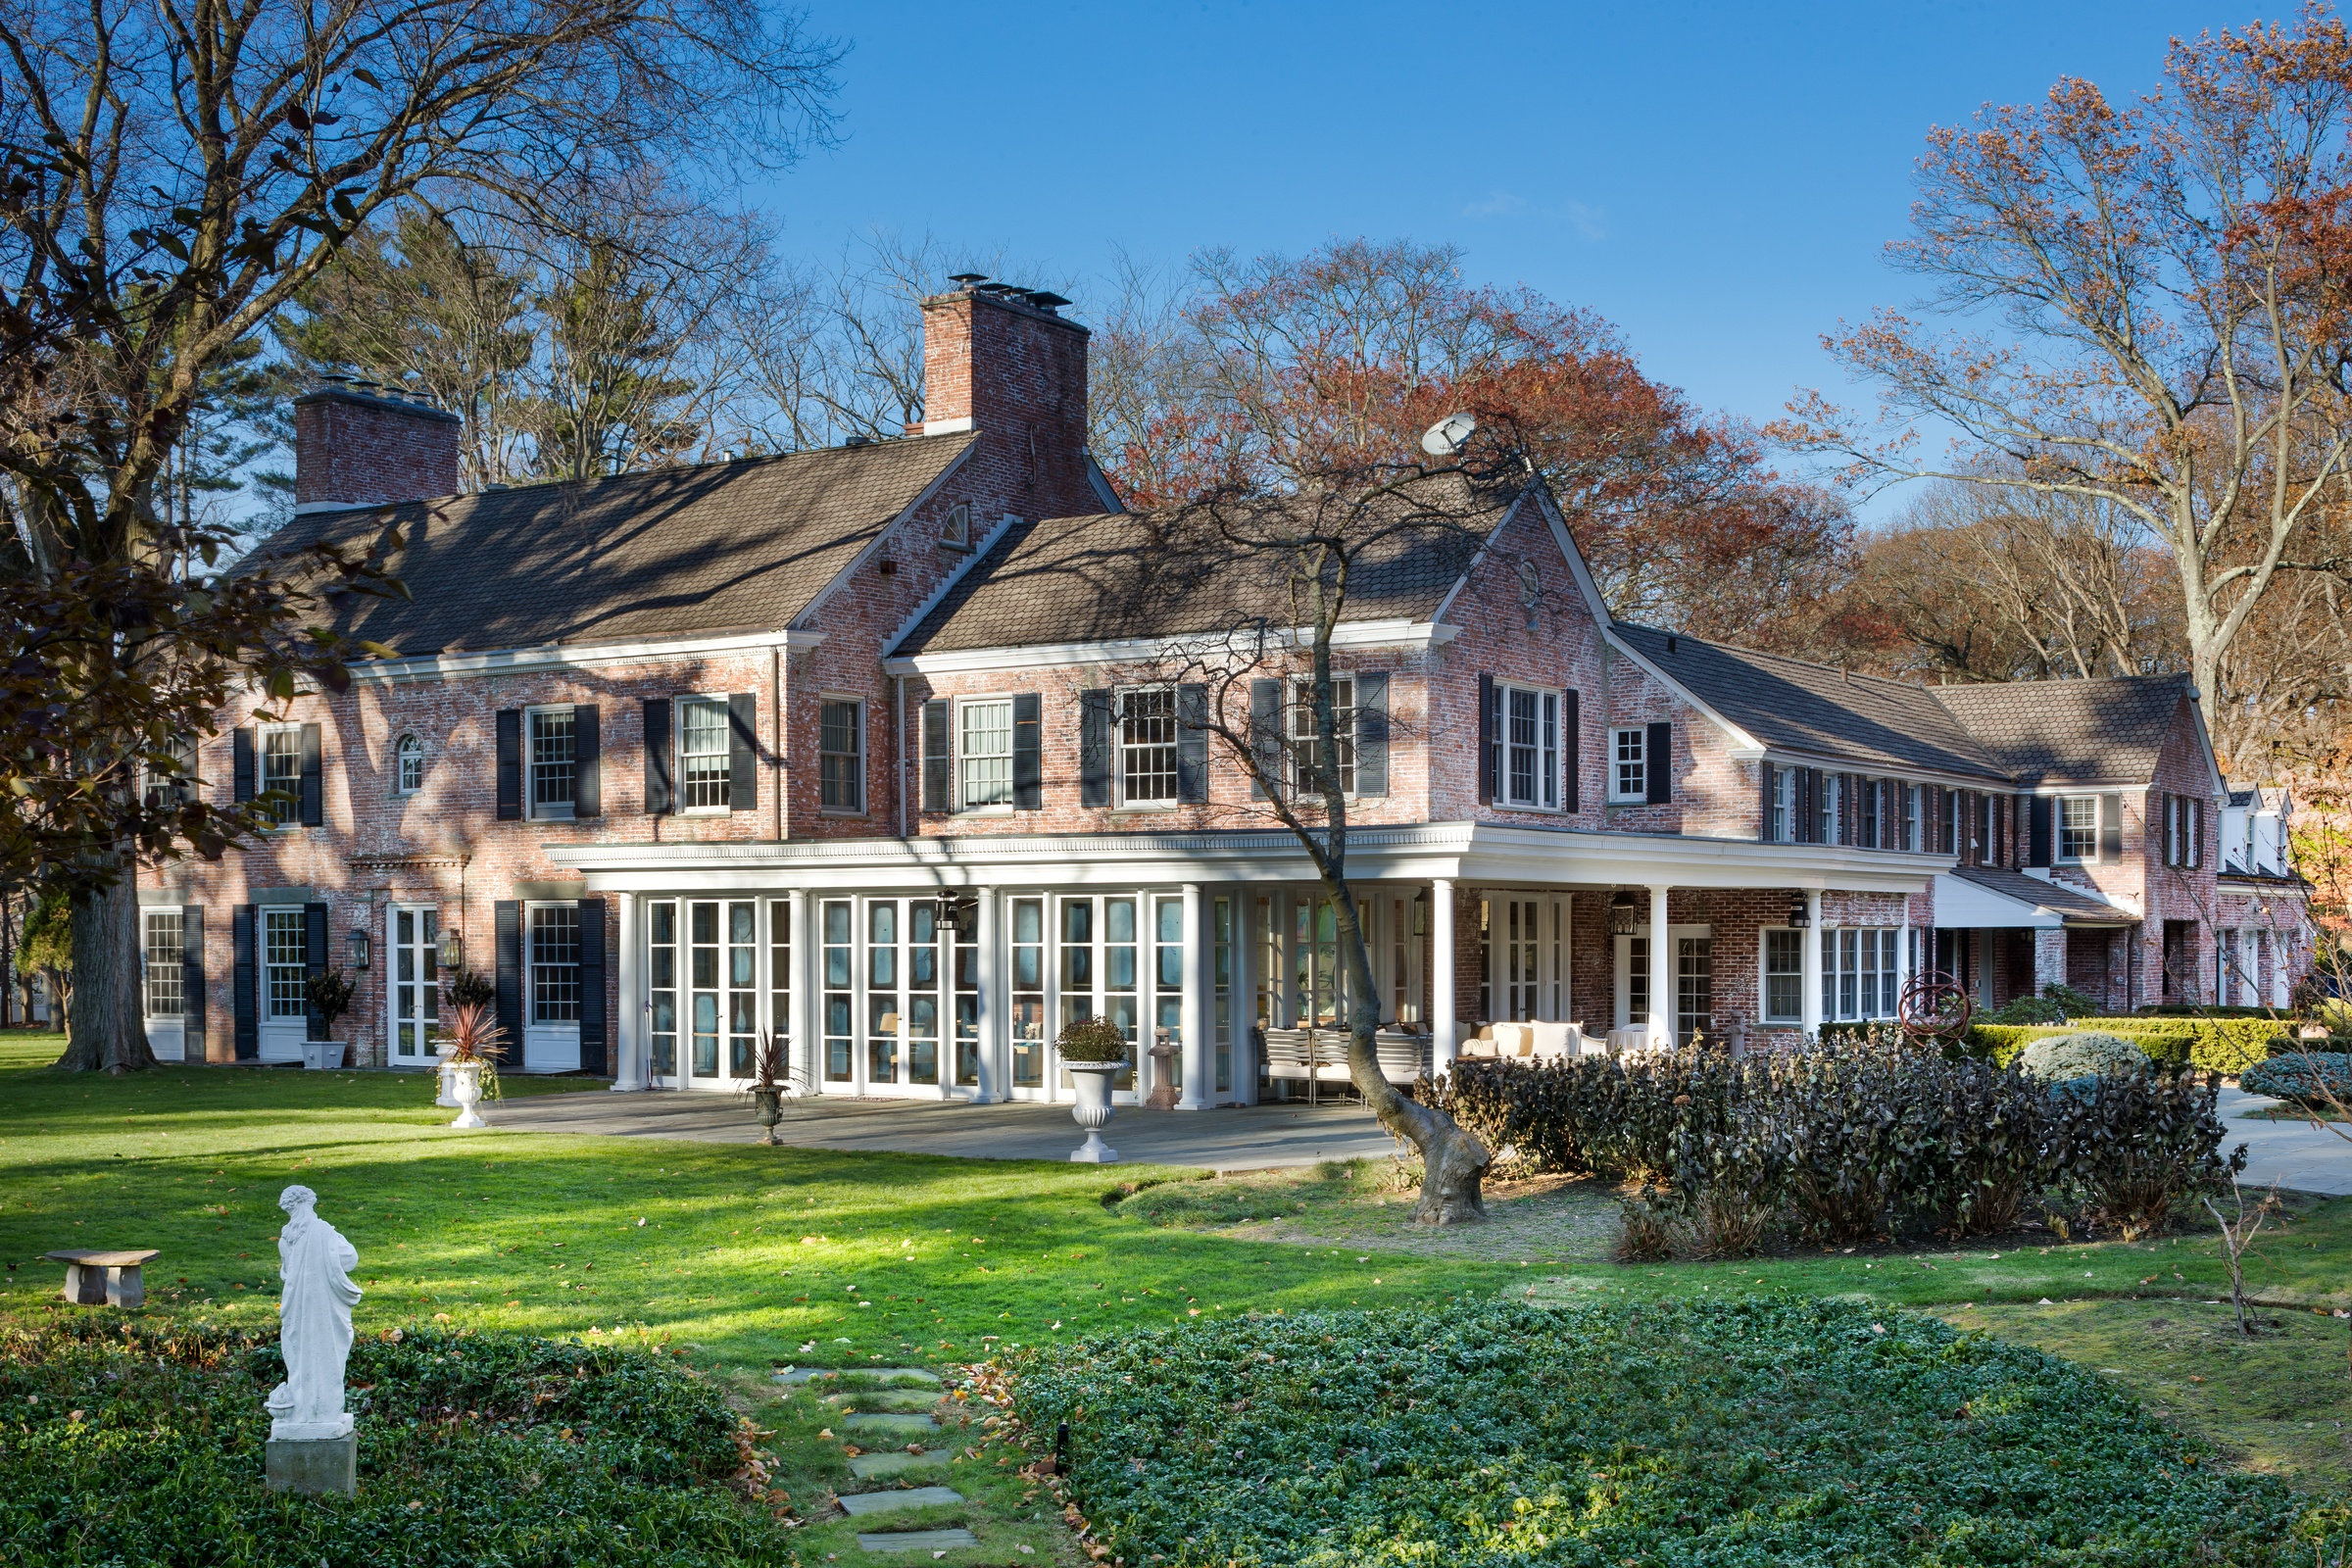 Update marc anthony drops price on long island estate by Home estate